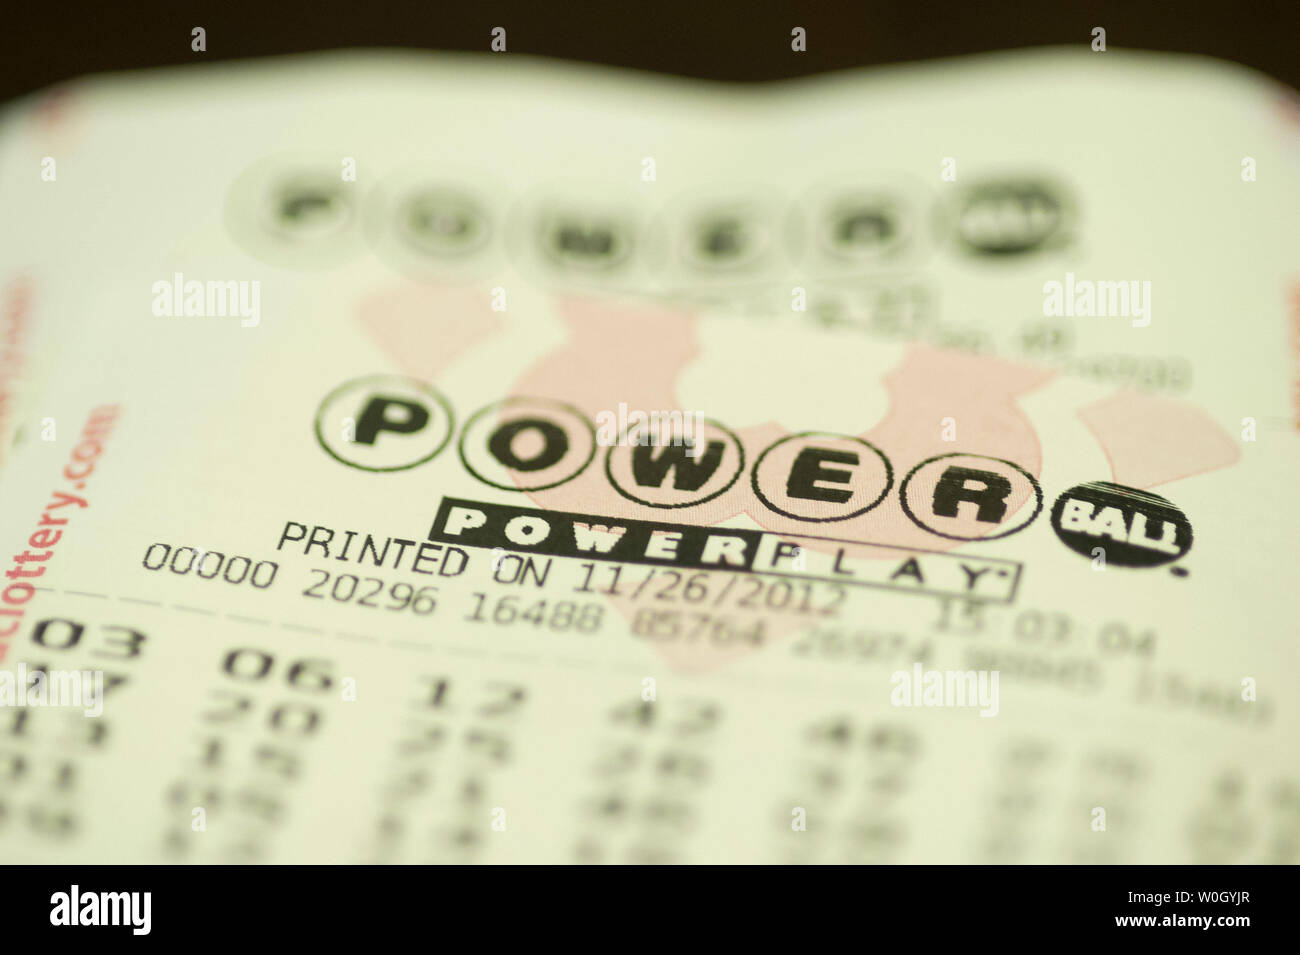 State Lottery Stock Photos & State Lottery Stock Images - Alamy